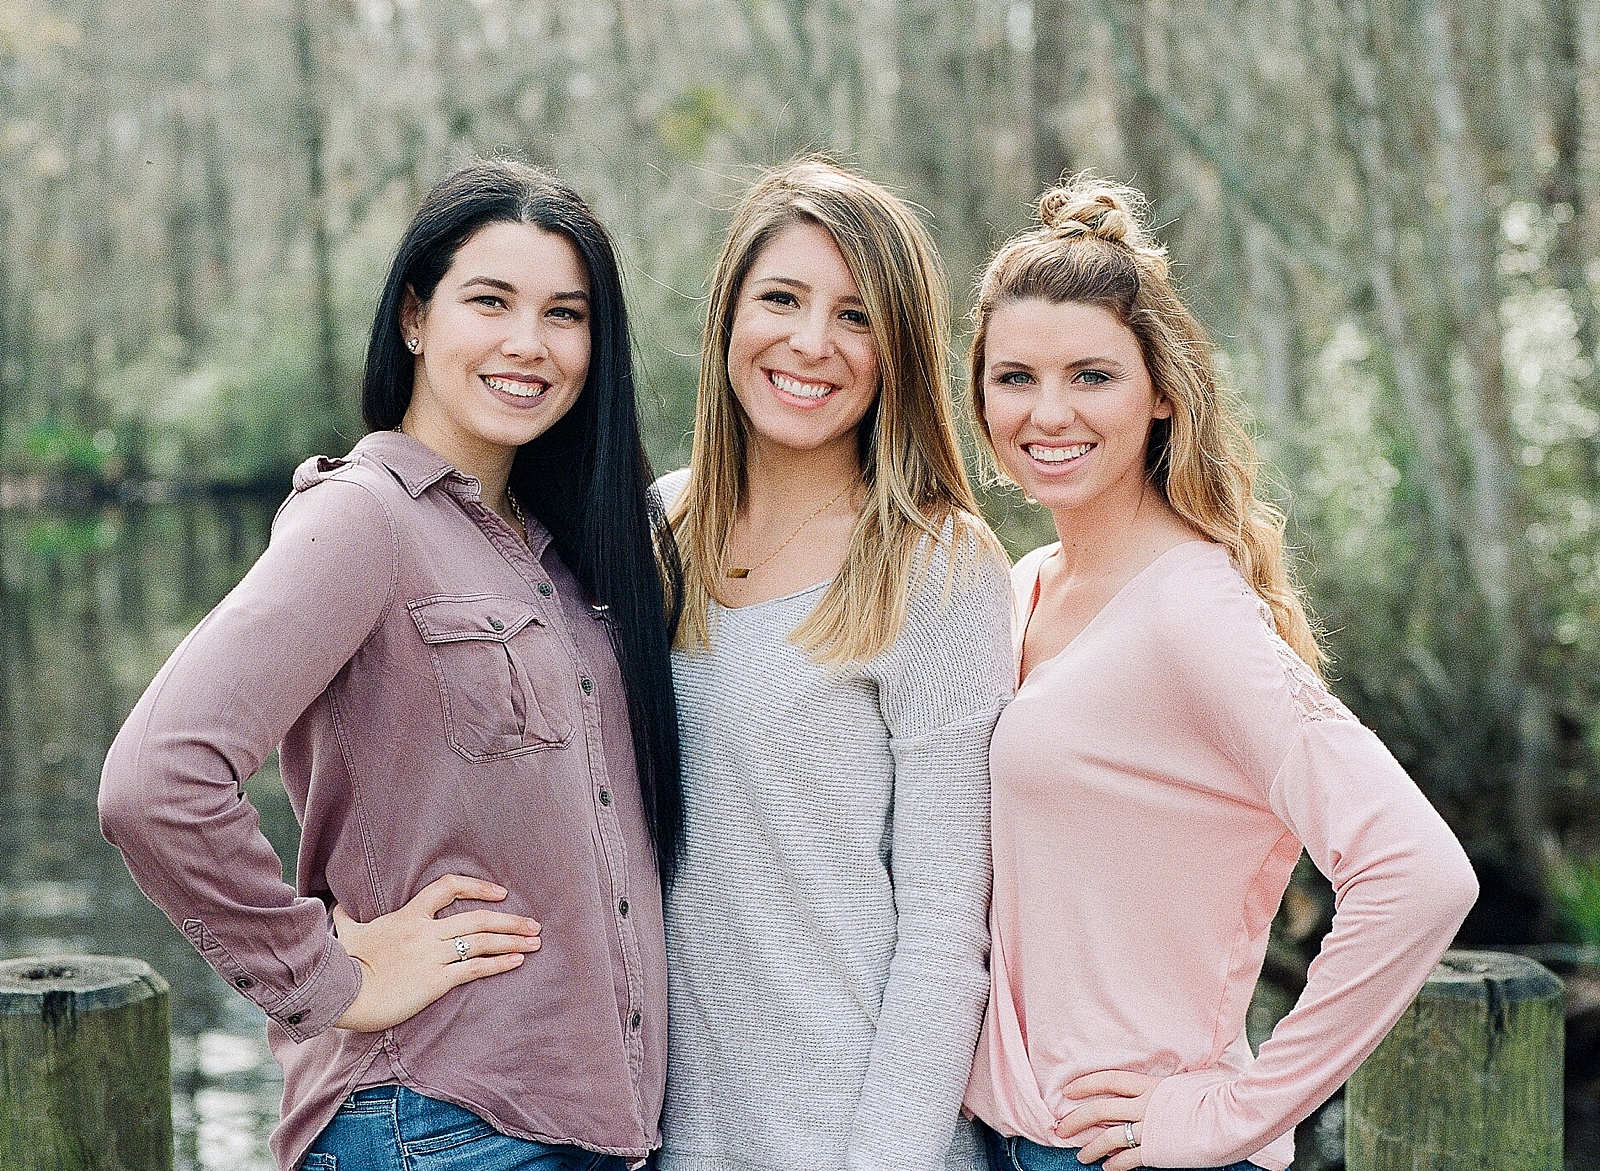 Friendship is the key to a strong business - from North Carolina family portrait photographer Lauren Nygard